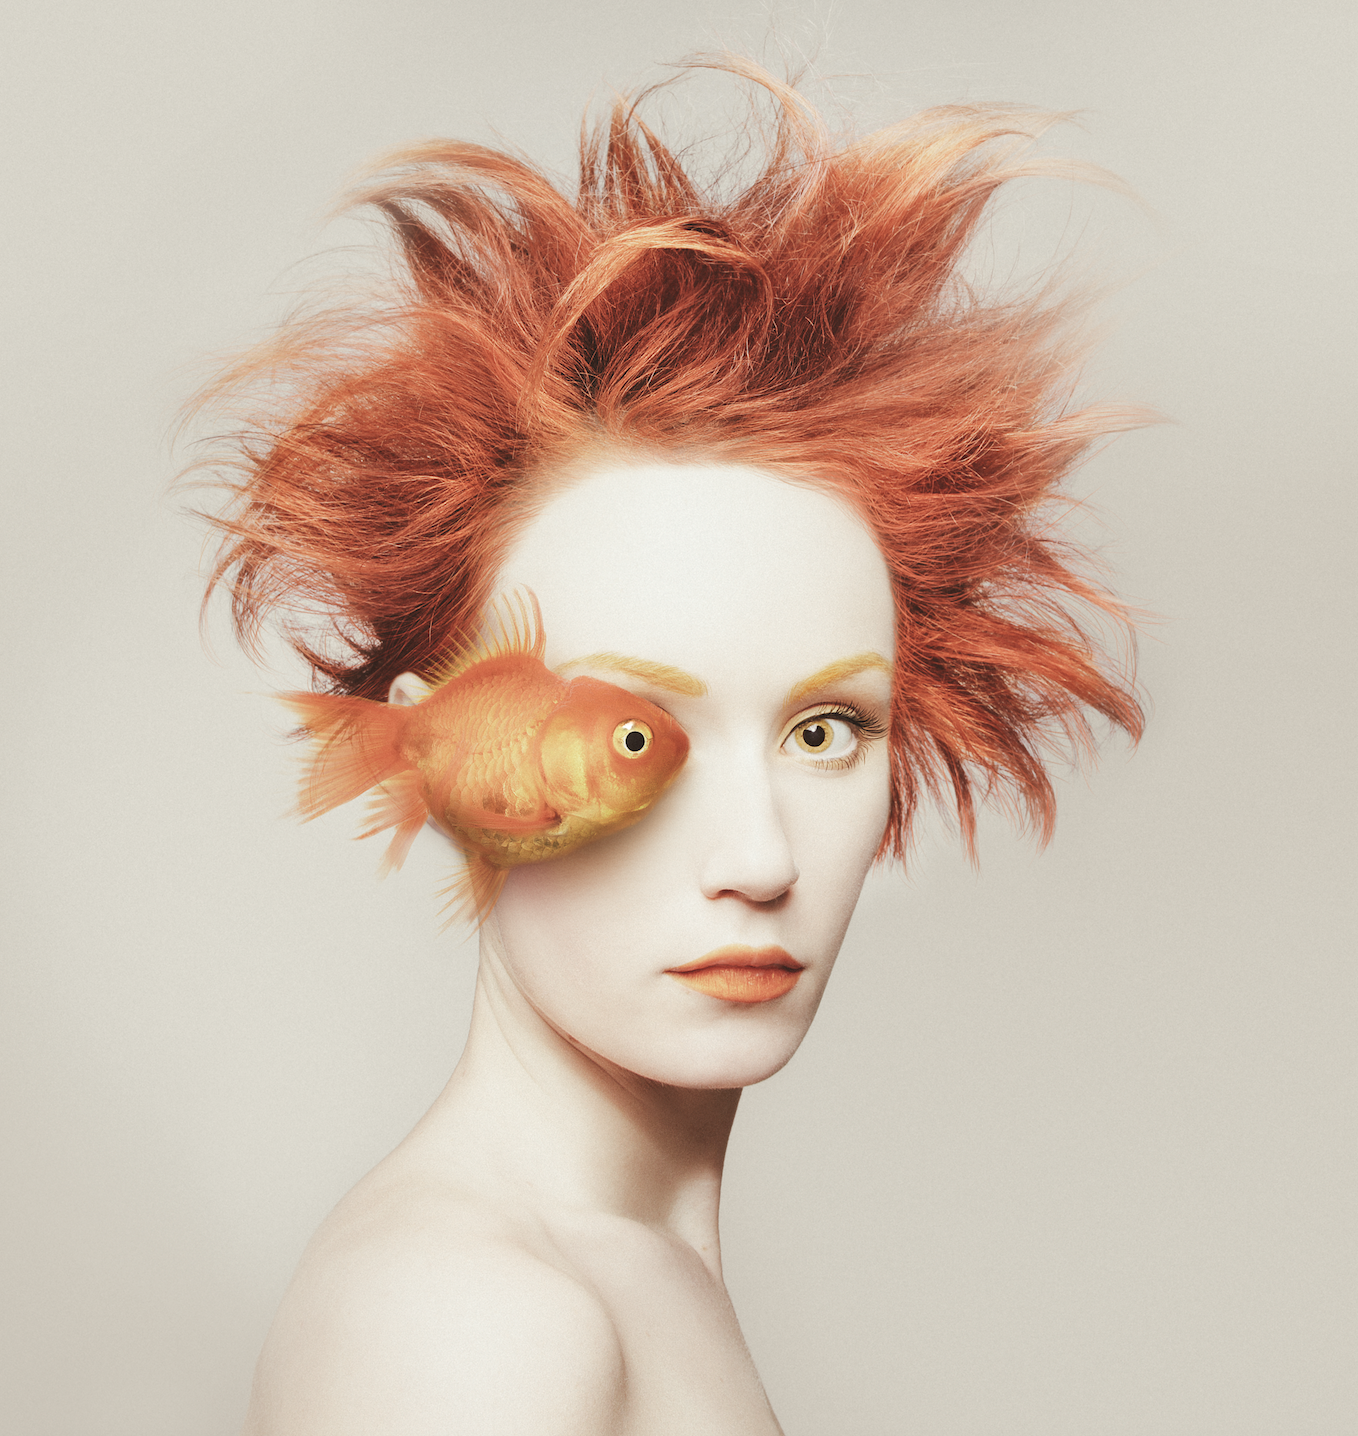 Anna Laudel Gallery , Flóra Borsi,  Fisheye , 2016, Giclee print on Hahnemuhle paper, 26 x 27.5 in., Edition of 25